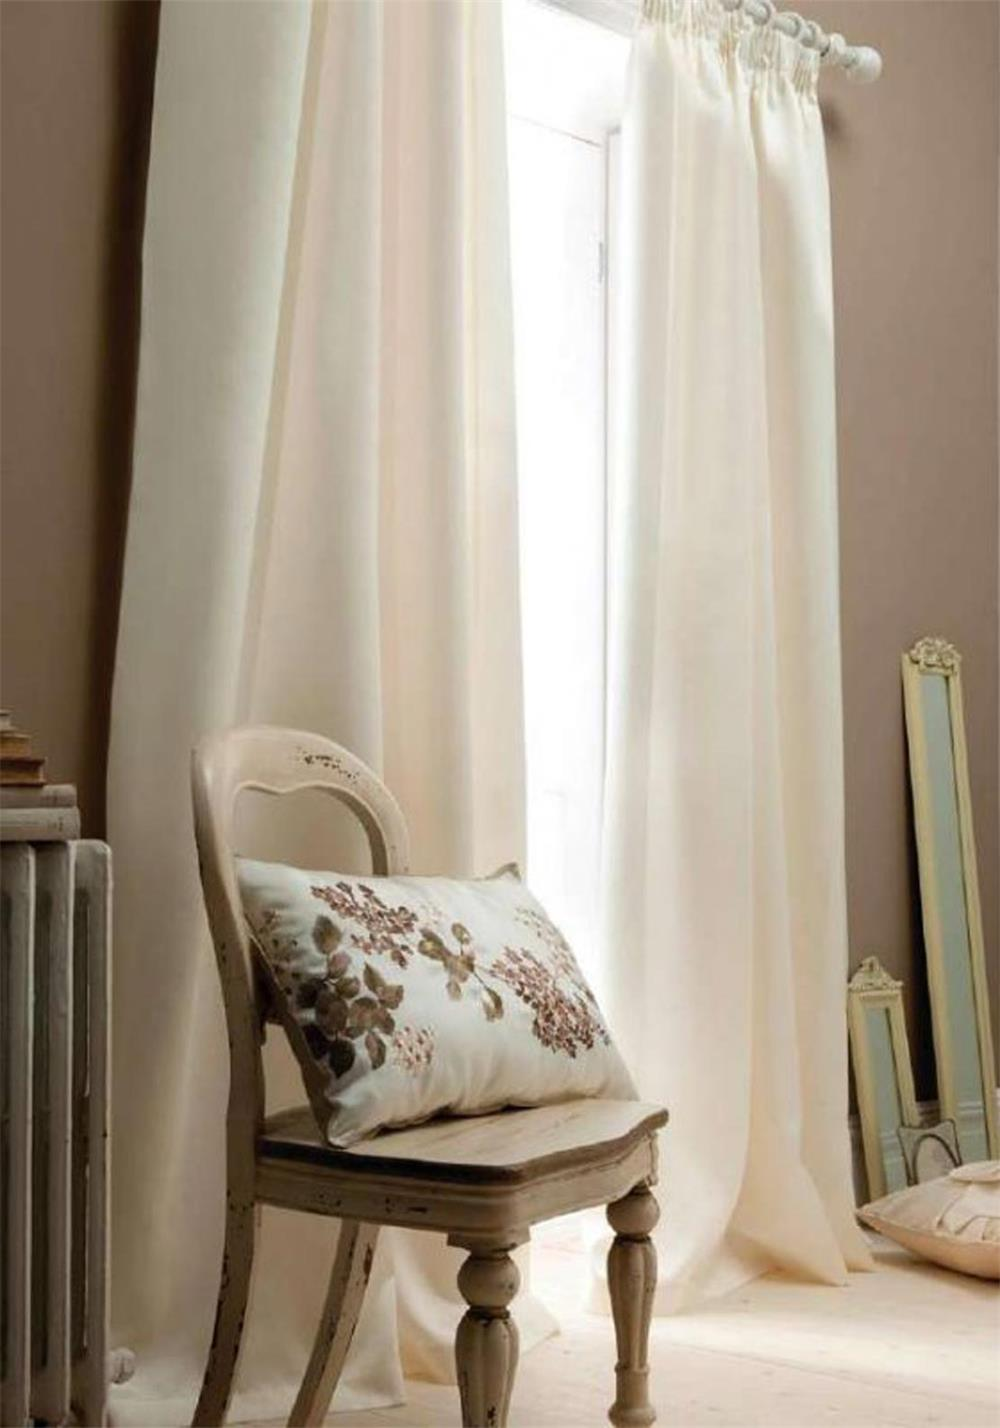 Catherine Lansfield Fully Lined Readymade Eyelet Curtains, Cream